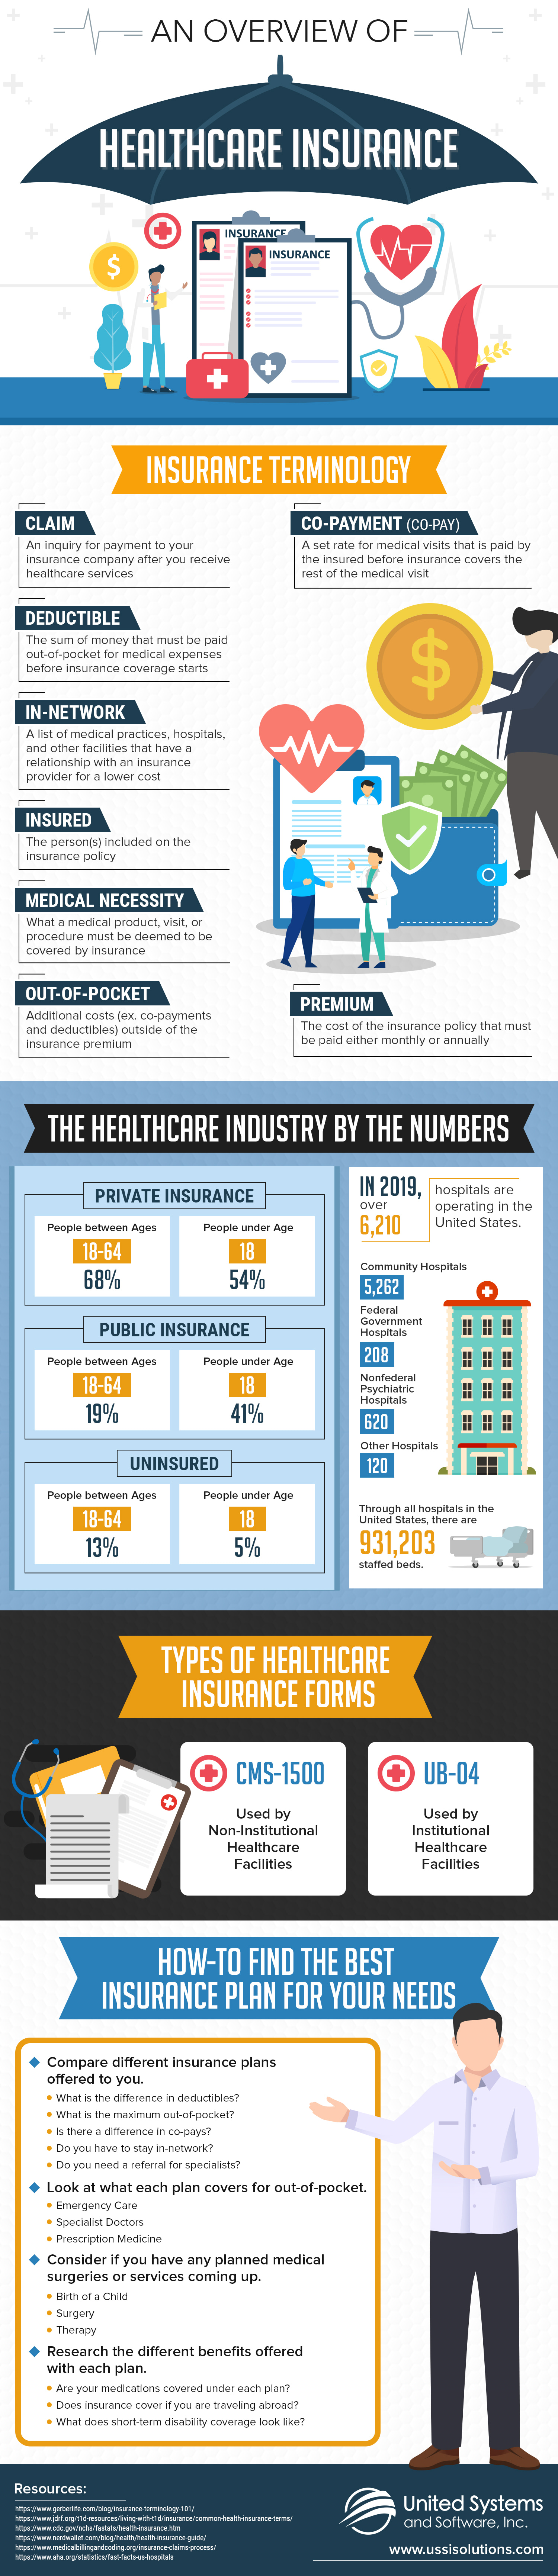 An-Overview-of-Healthcare-Insurance.jpg